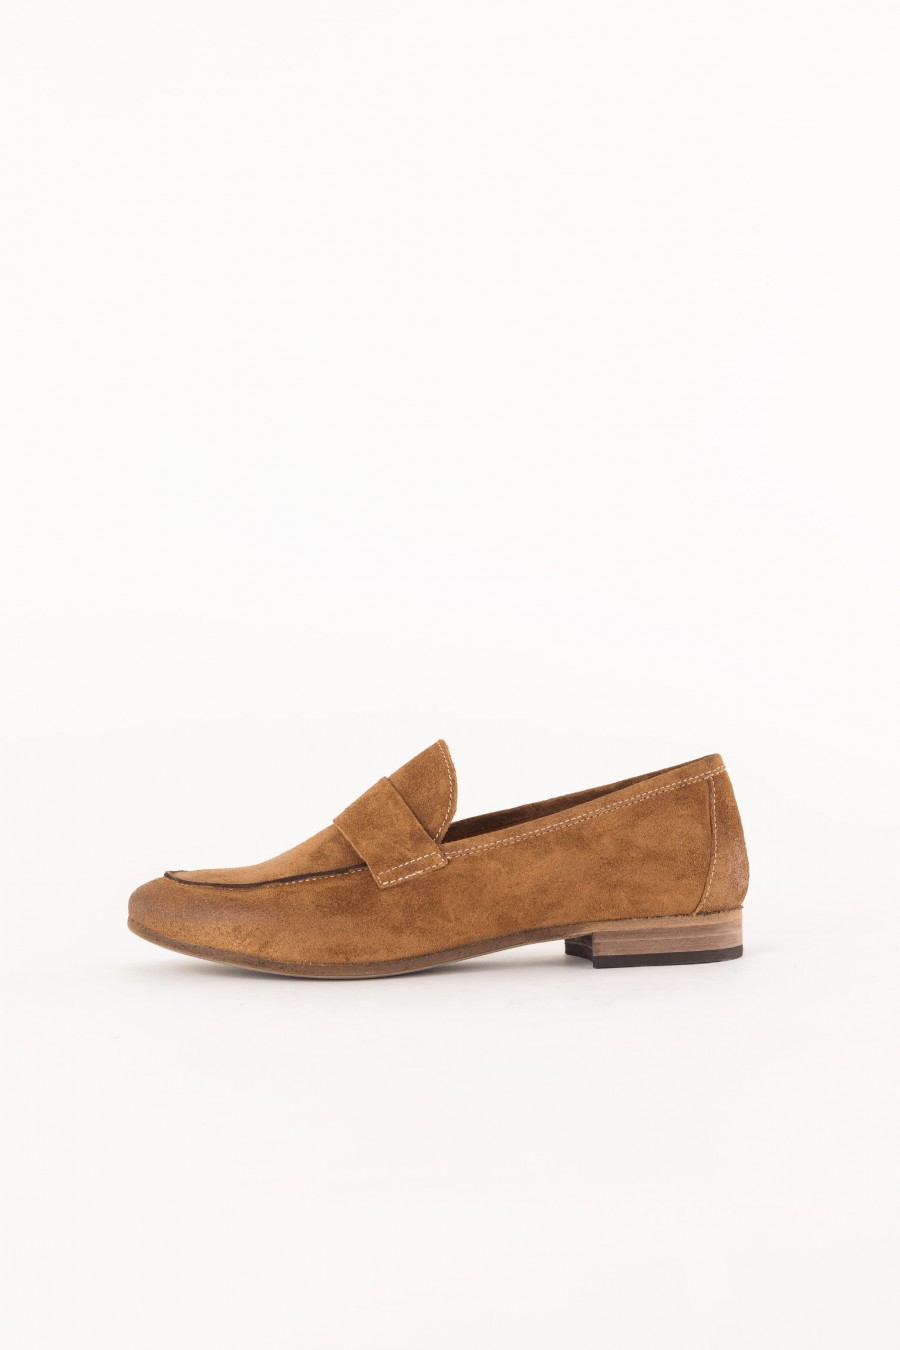 flat brown suede shoe closed